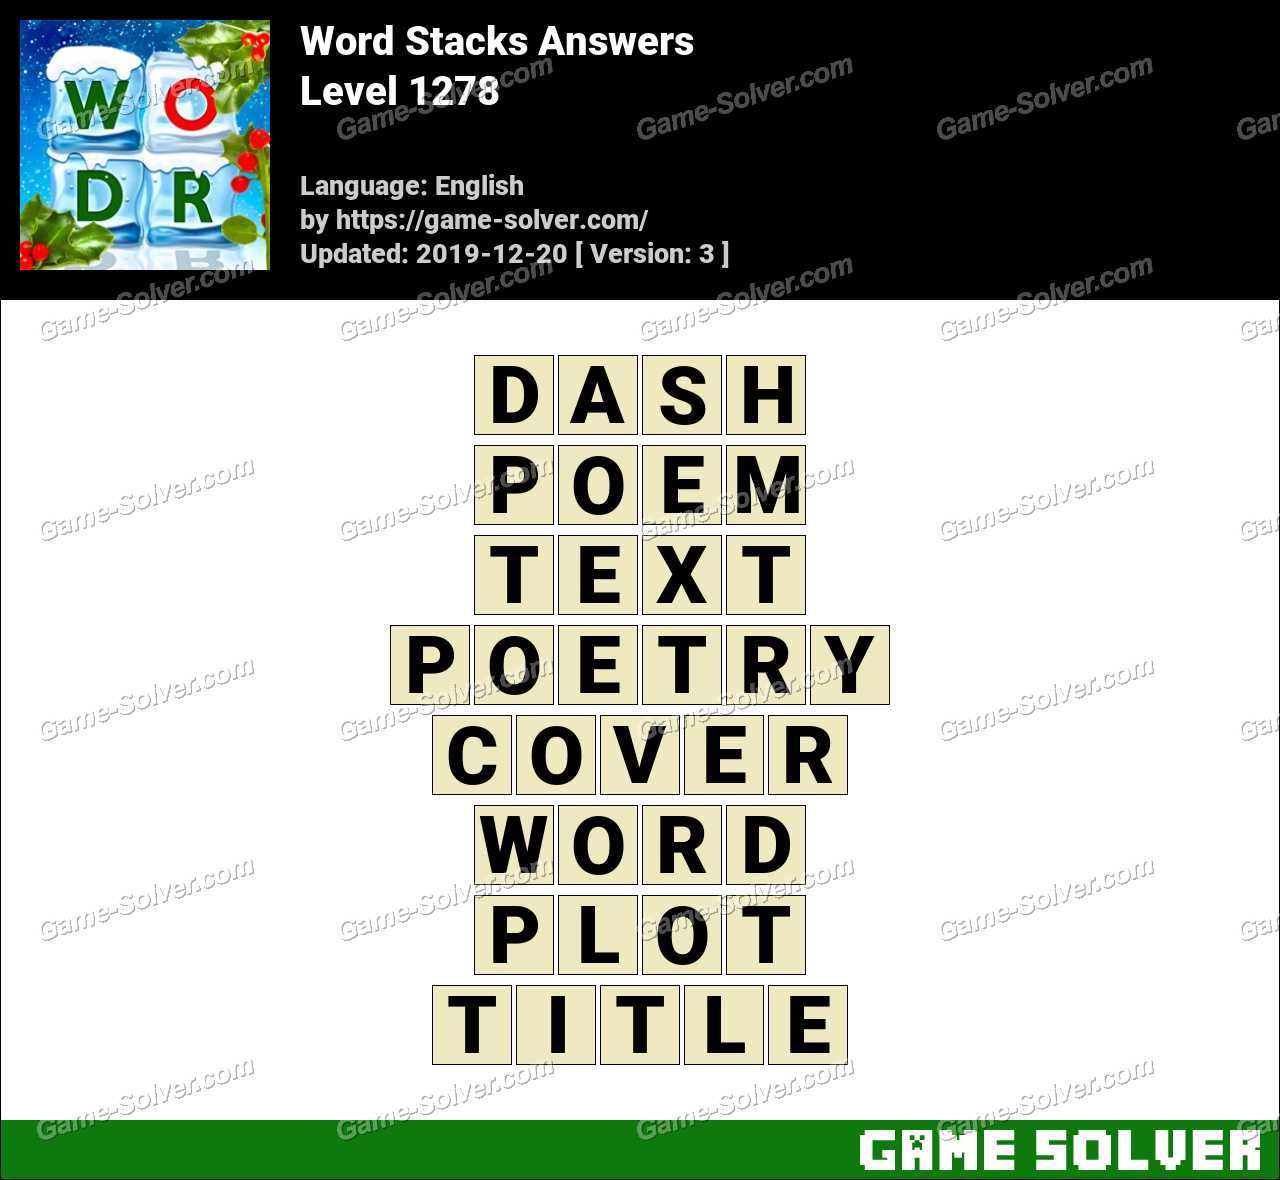 Word Stacks Level 1278 Answers